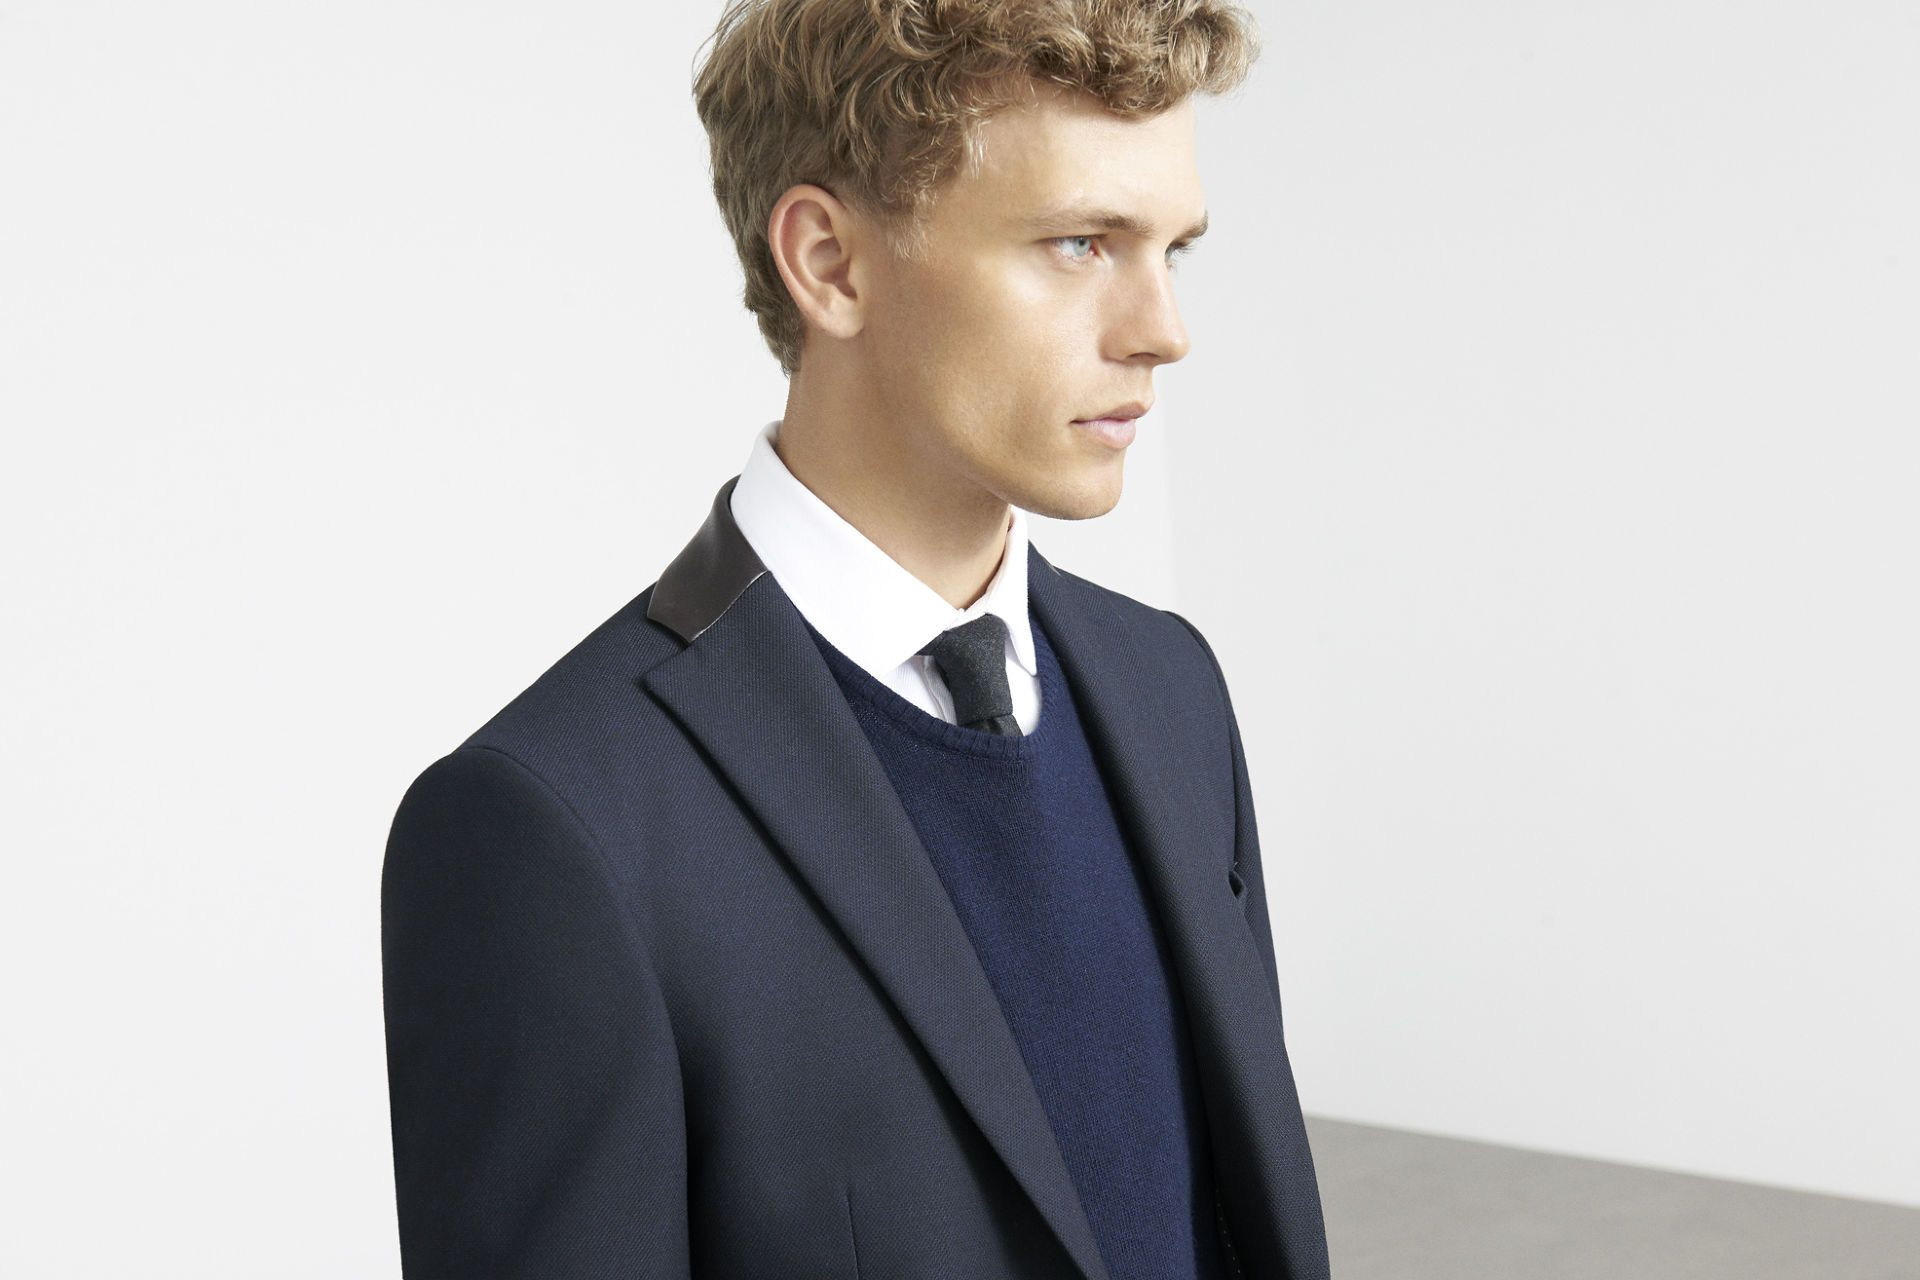 ZARA Man - Lookbook August / September